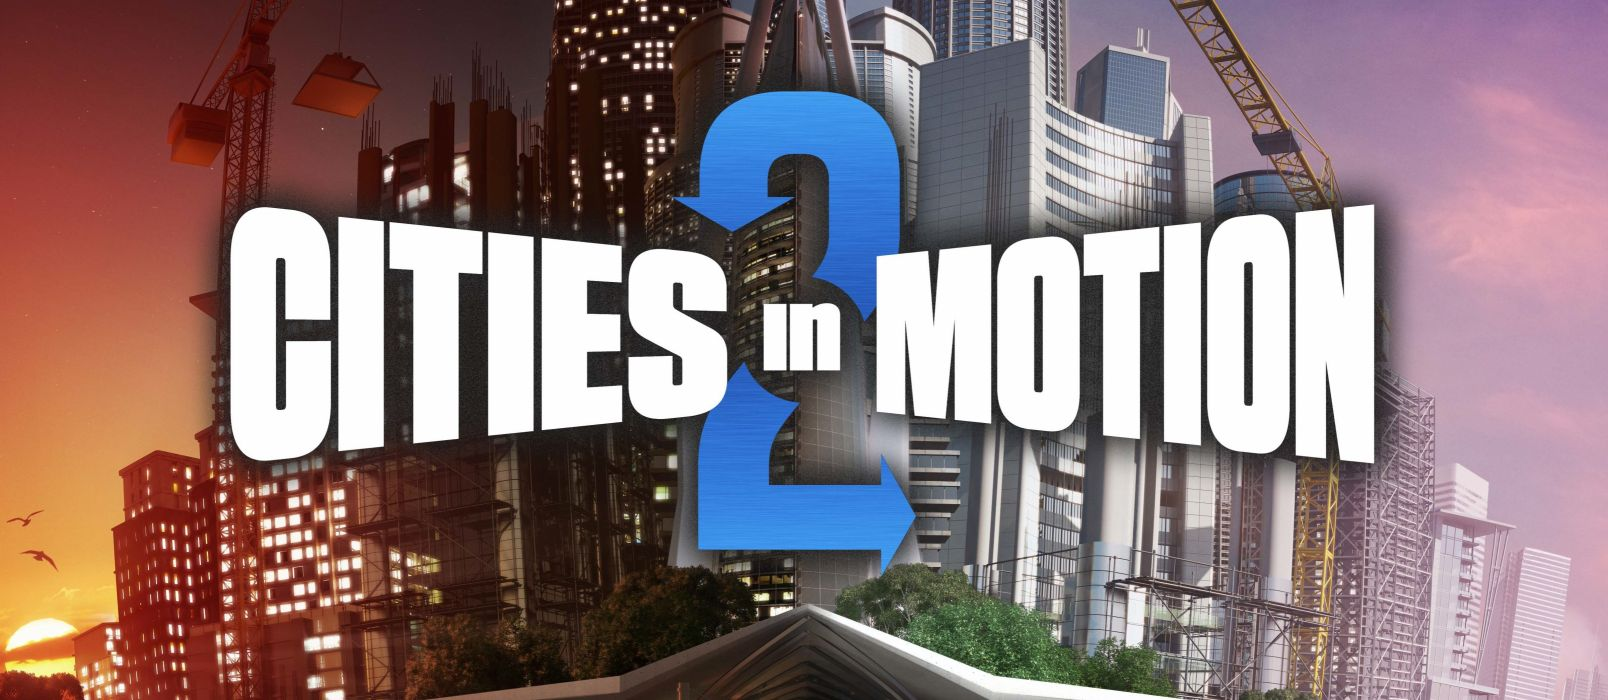 Cities in Motion 2 wallpaper